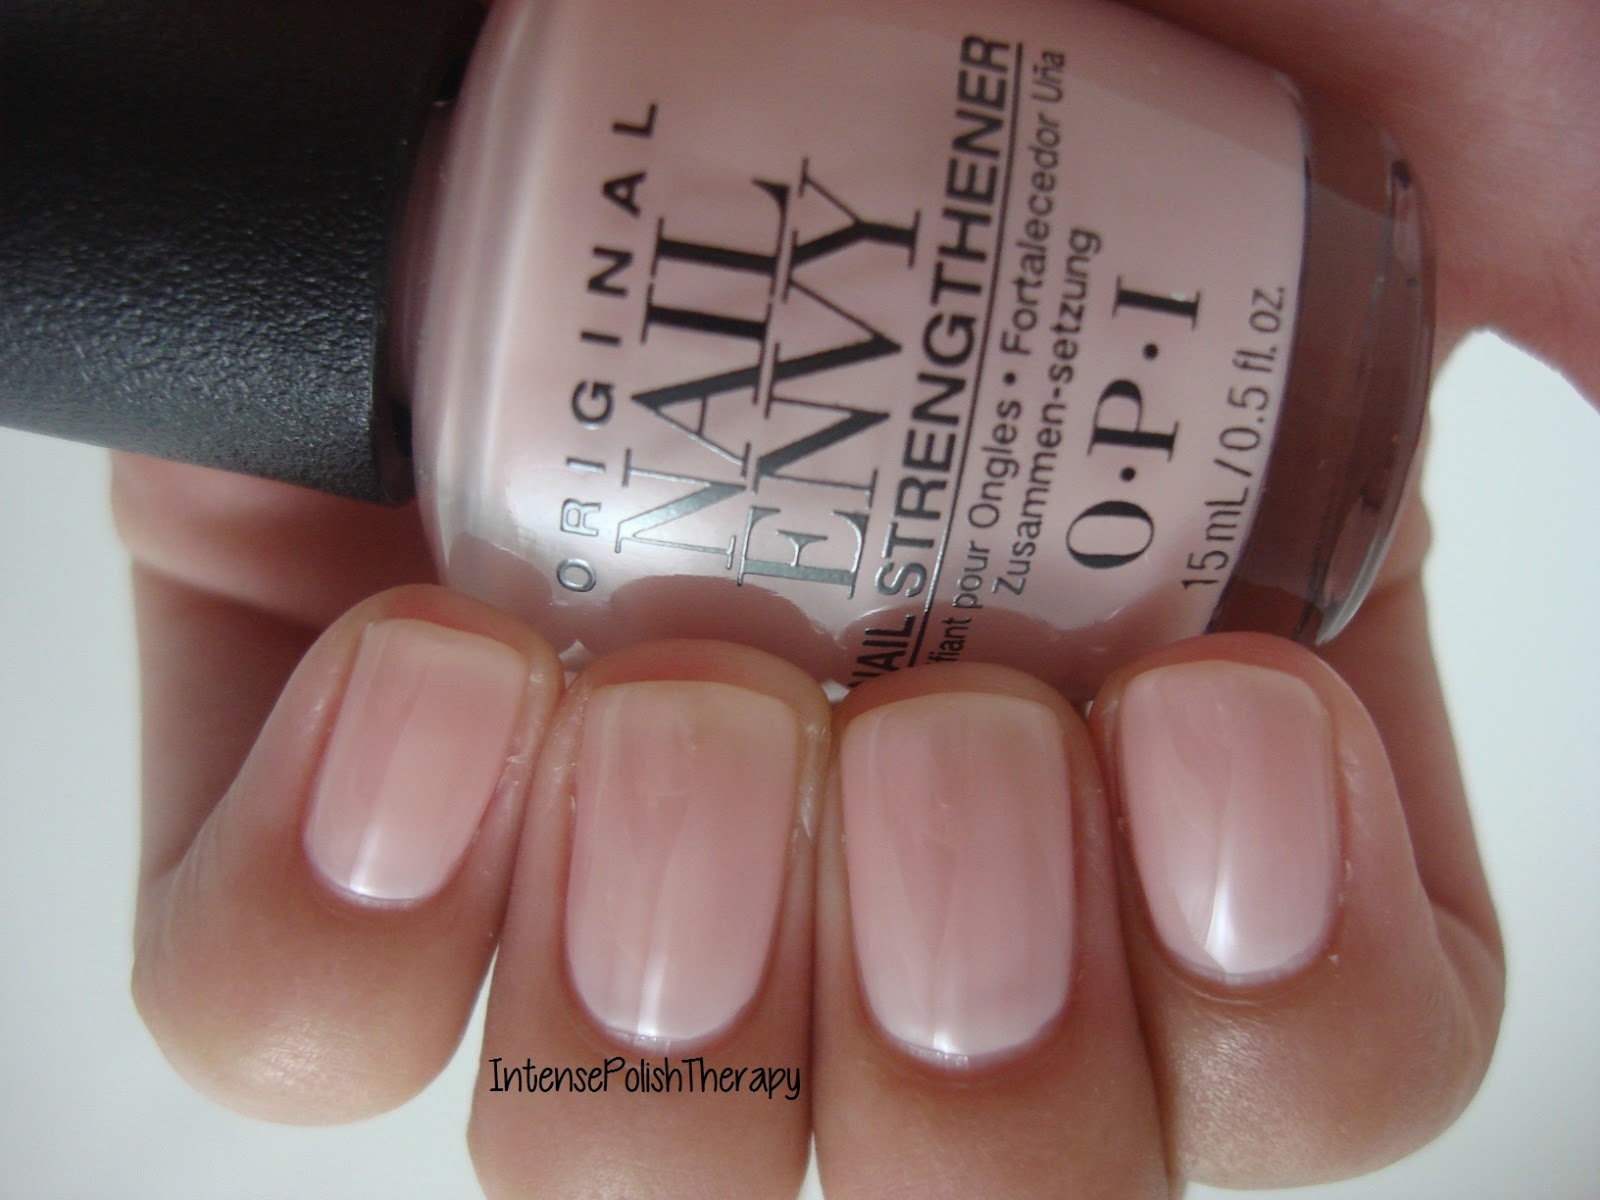 Attractive Opi Nail Envy Review Deutsch Embellishment - Nail Art ...